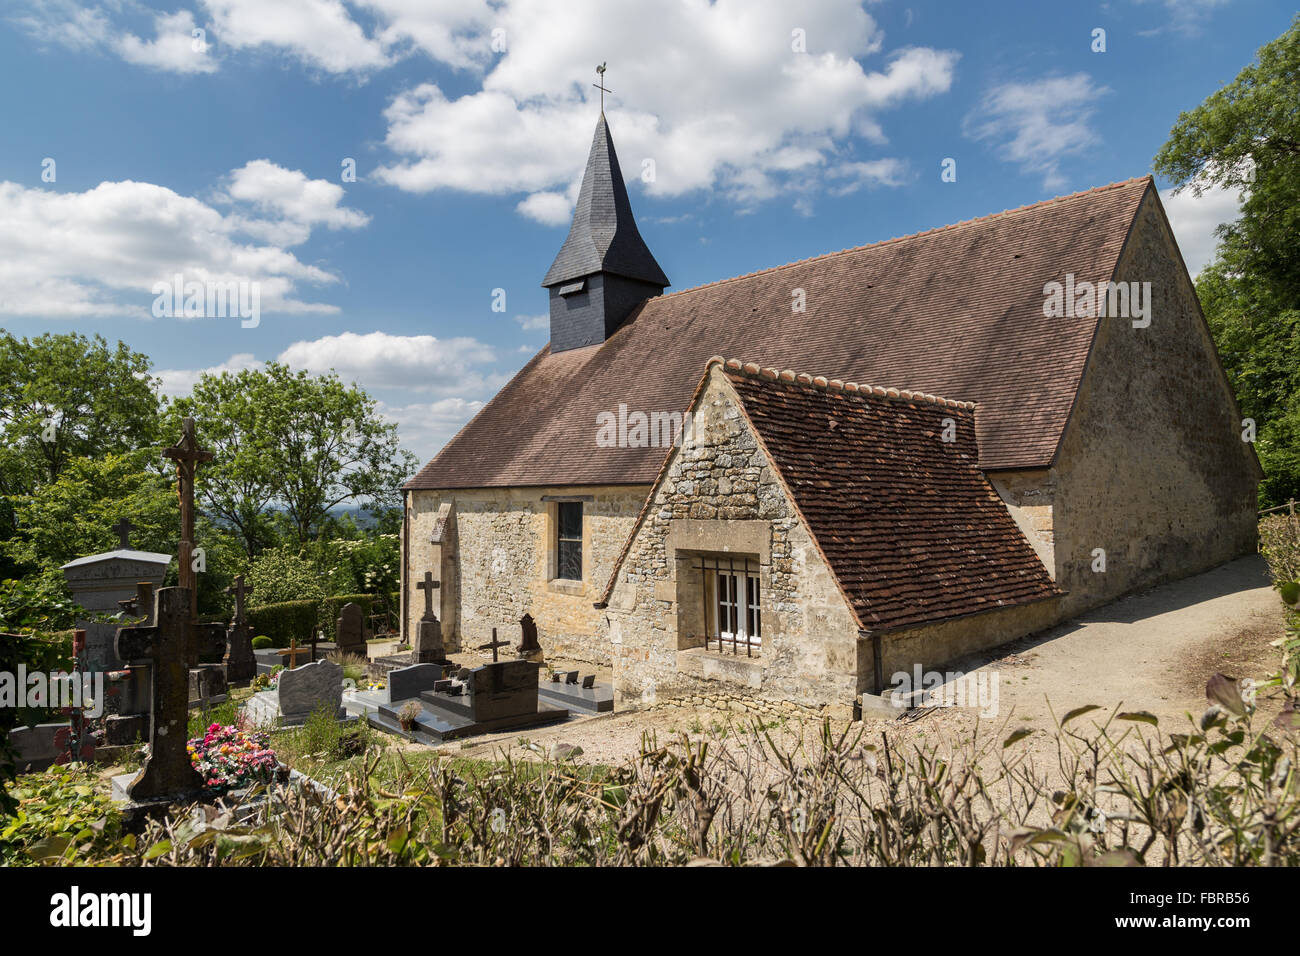 The church of Coudehard Orne (Eglise De Coudehard), on hill 262 high above the Falaise Pocket, Normandy, France Stock Photo